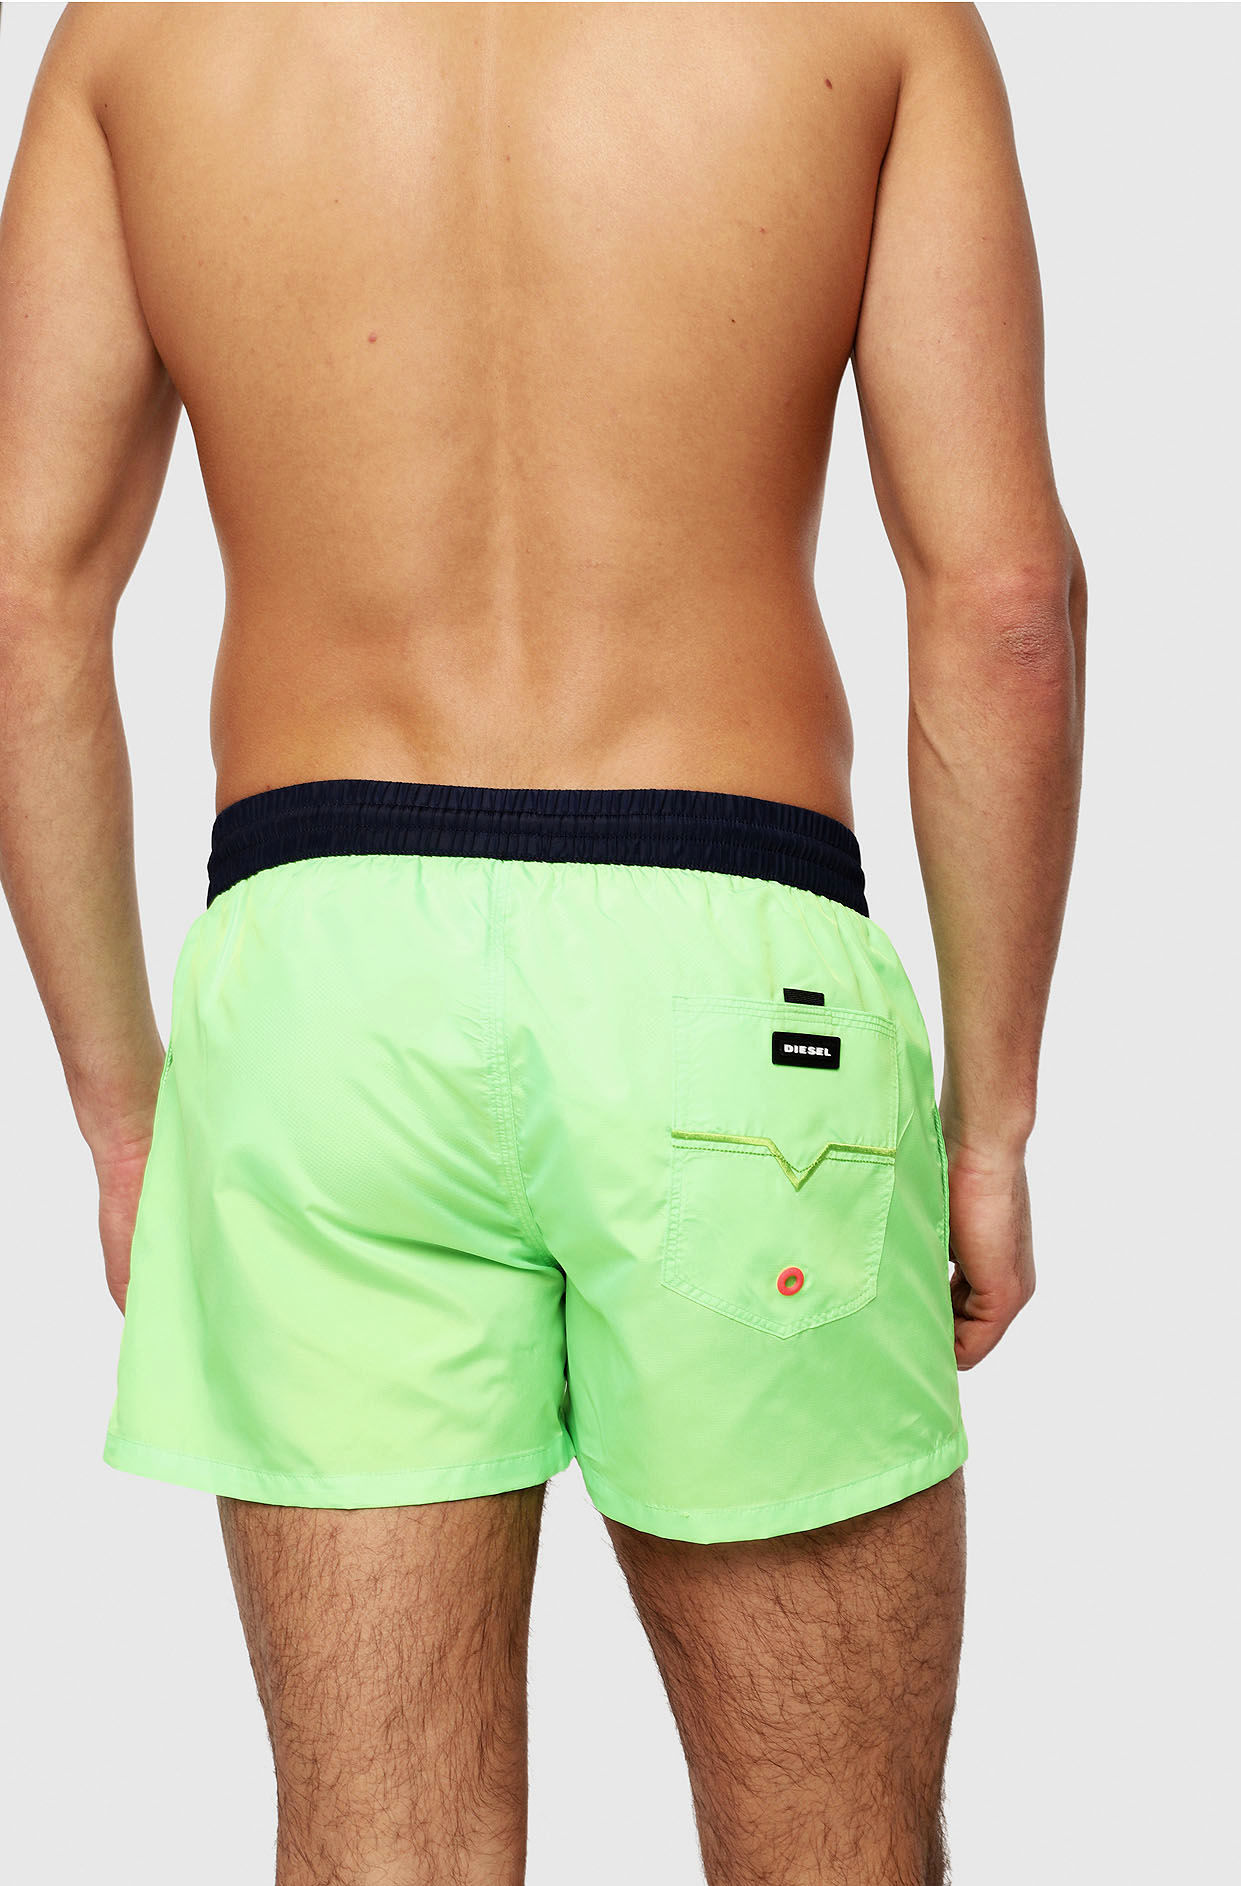 d116bd9fcb Swimwear :: Swim Shorts :: DIESEL SANDY 2.017 Swim Shorts - neon green -